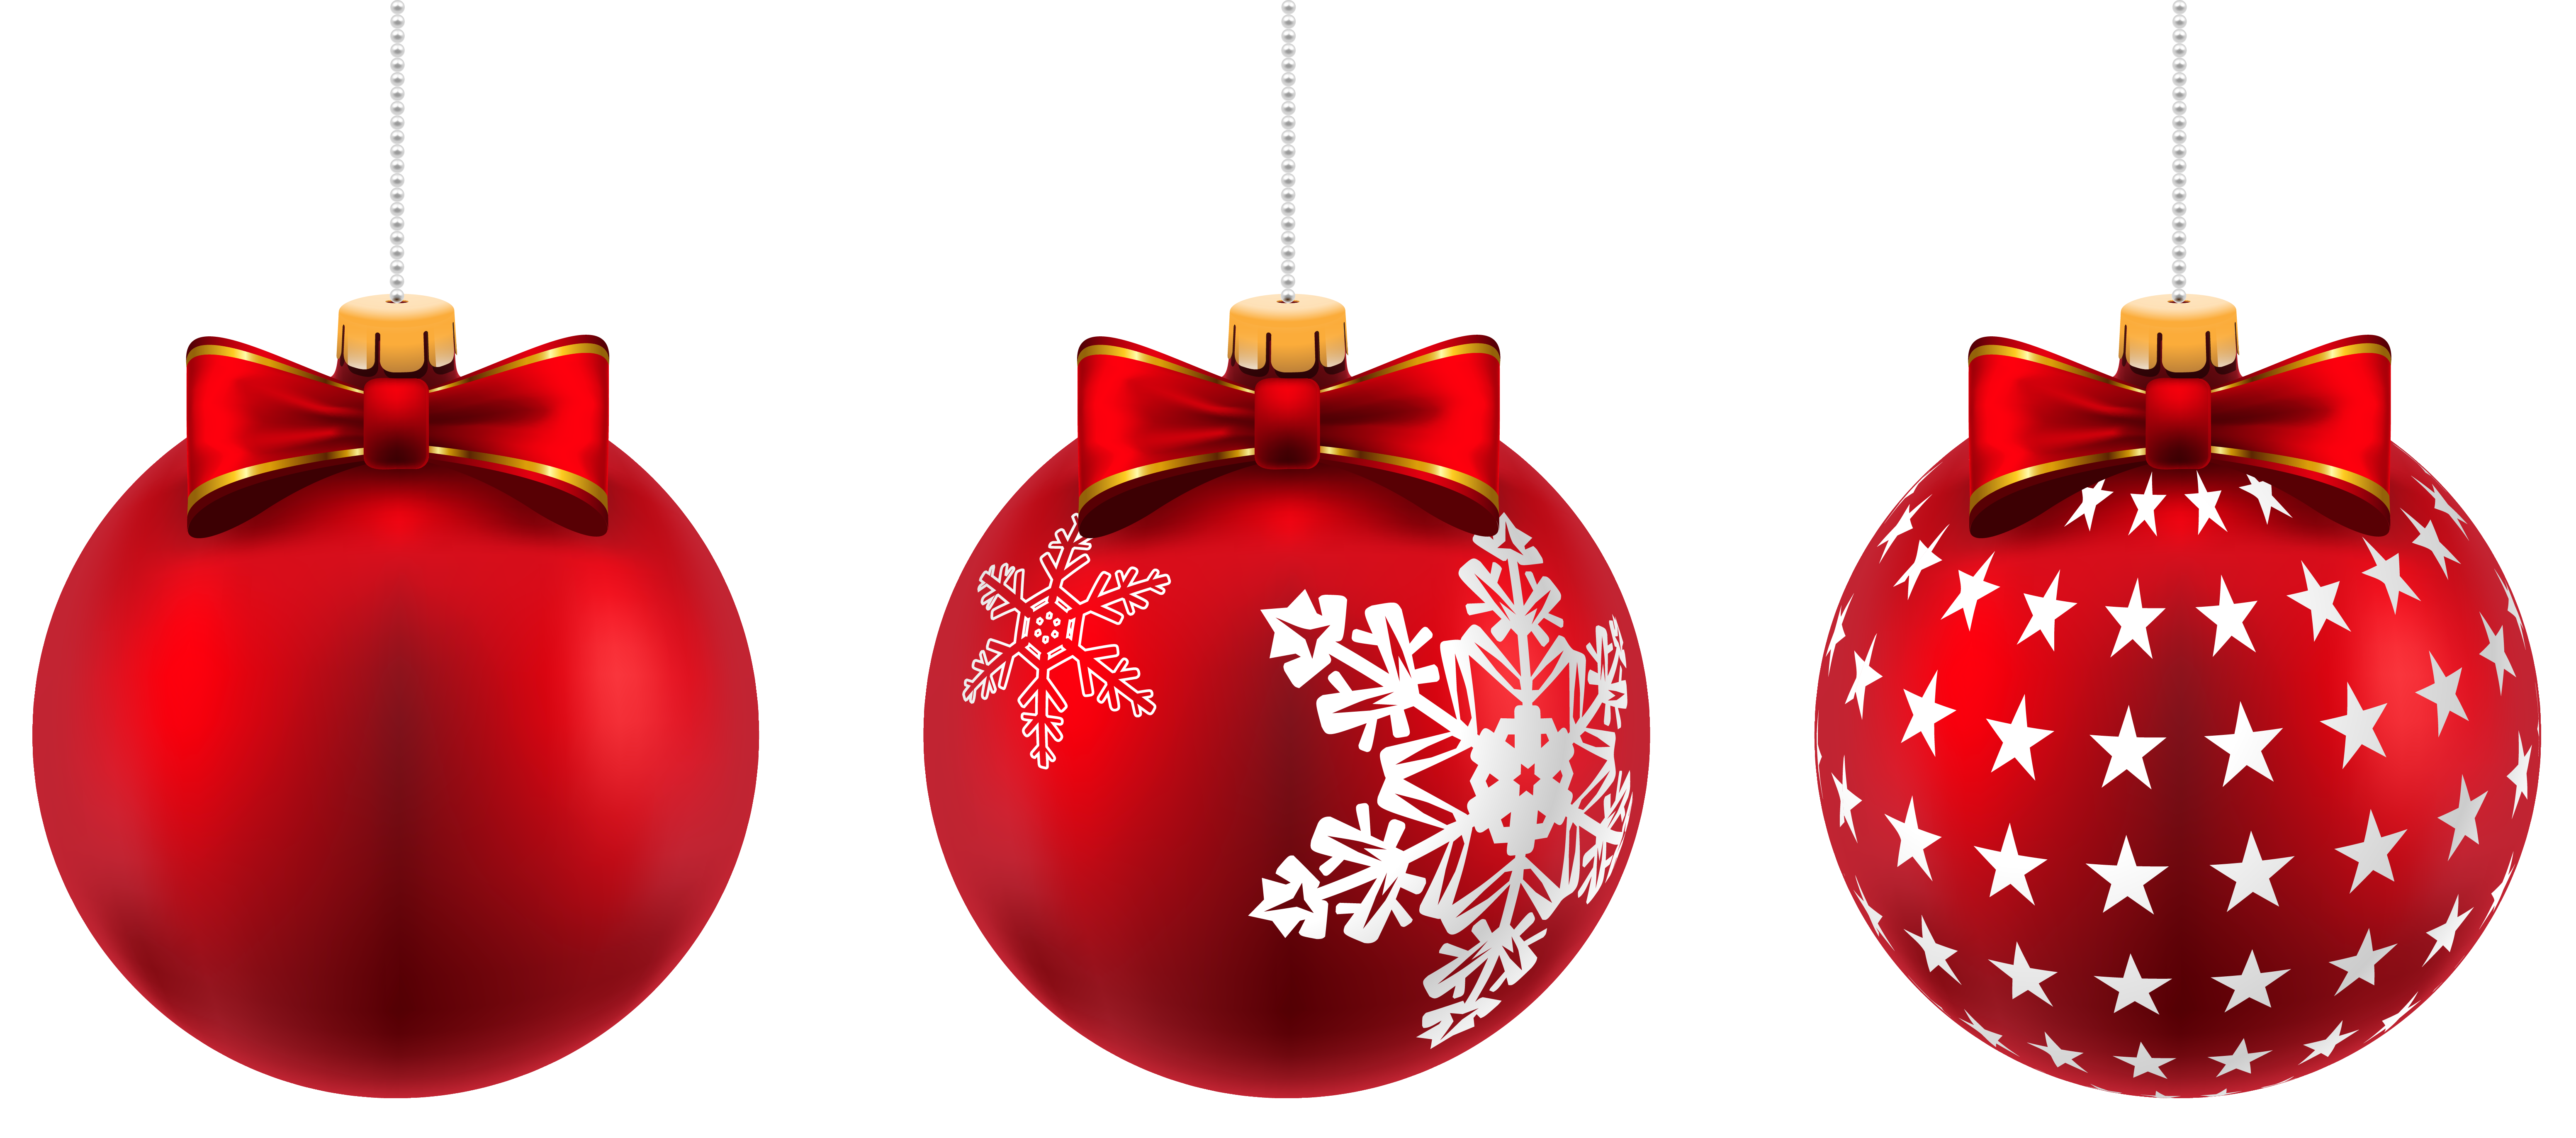 Clipart christmas outline. Beautiful red balls png